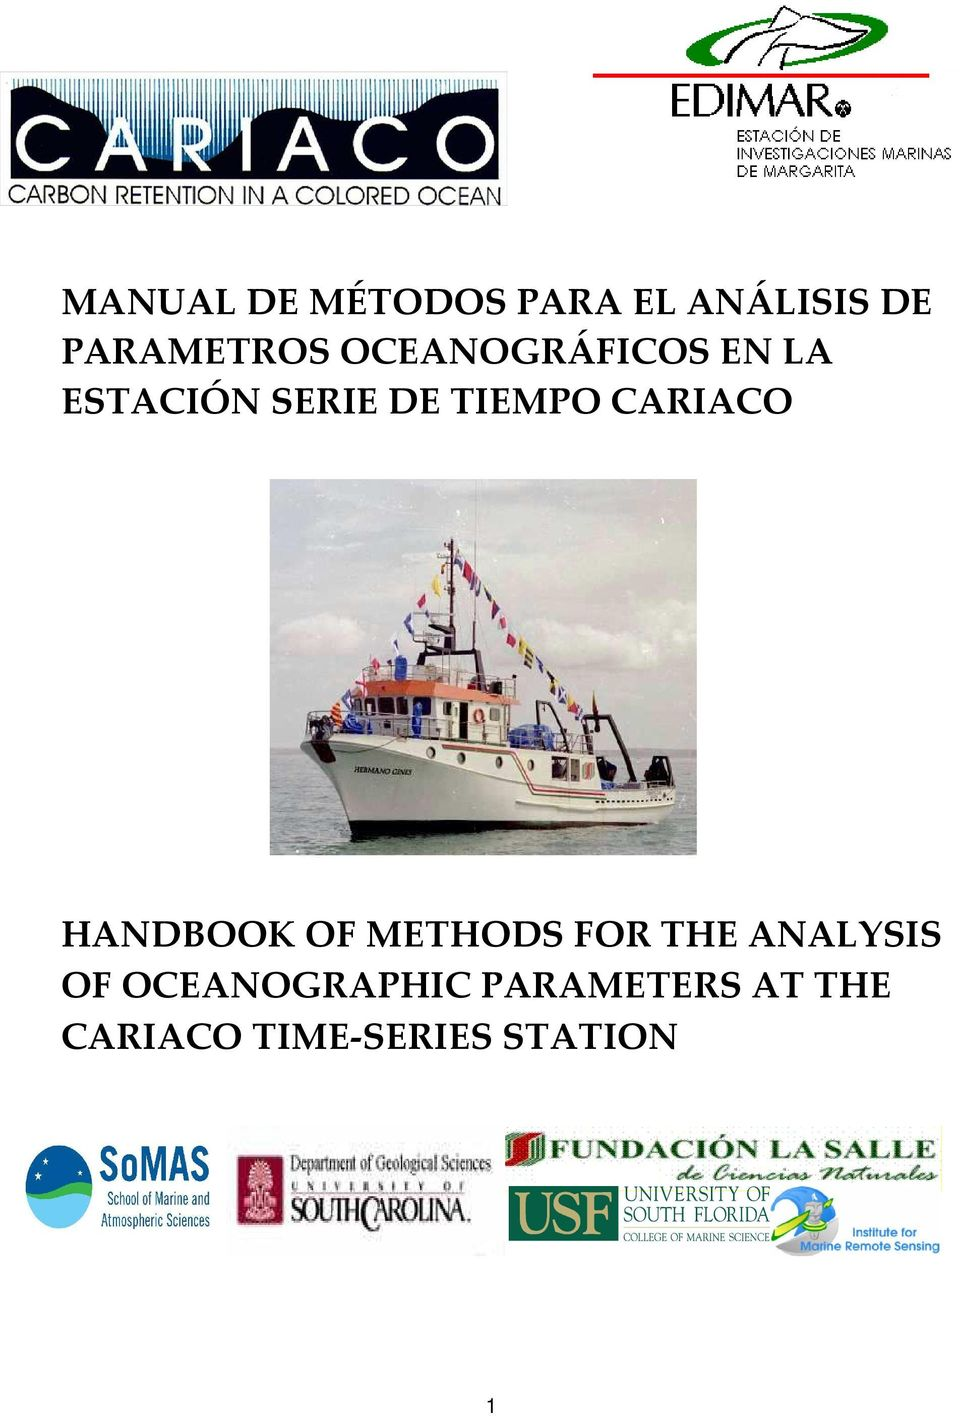 CARIACO HANDBOOK OF METHODS FOR THE ANALYSIS OF